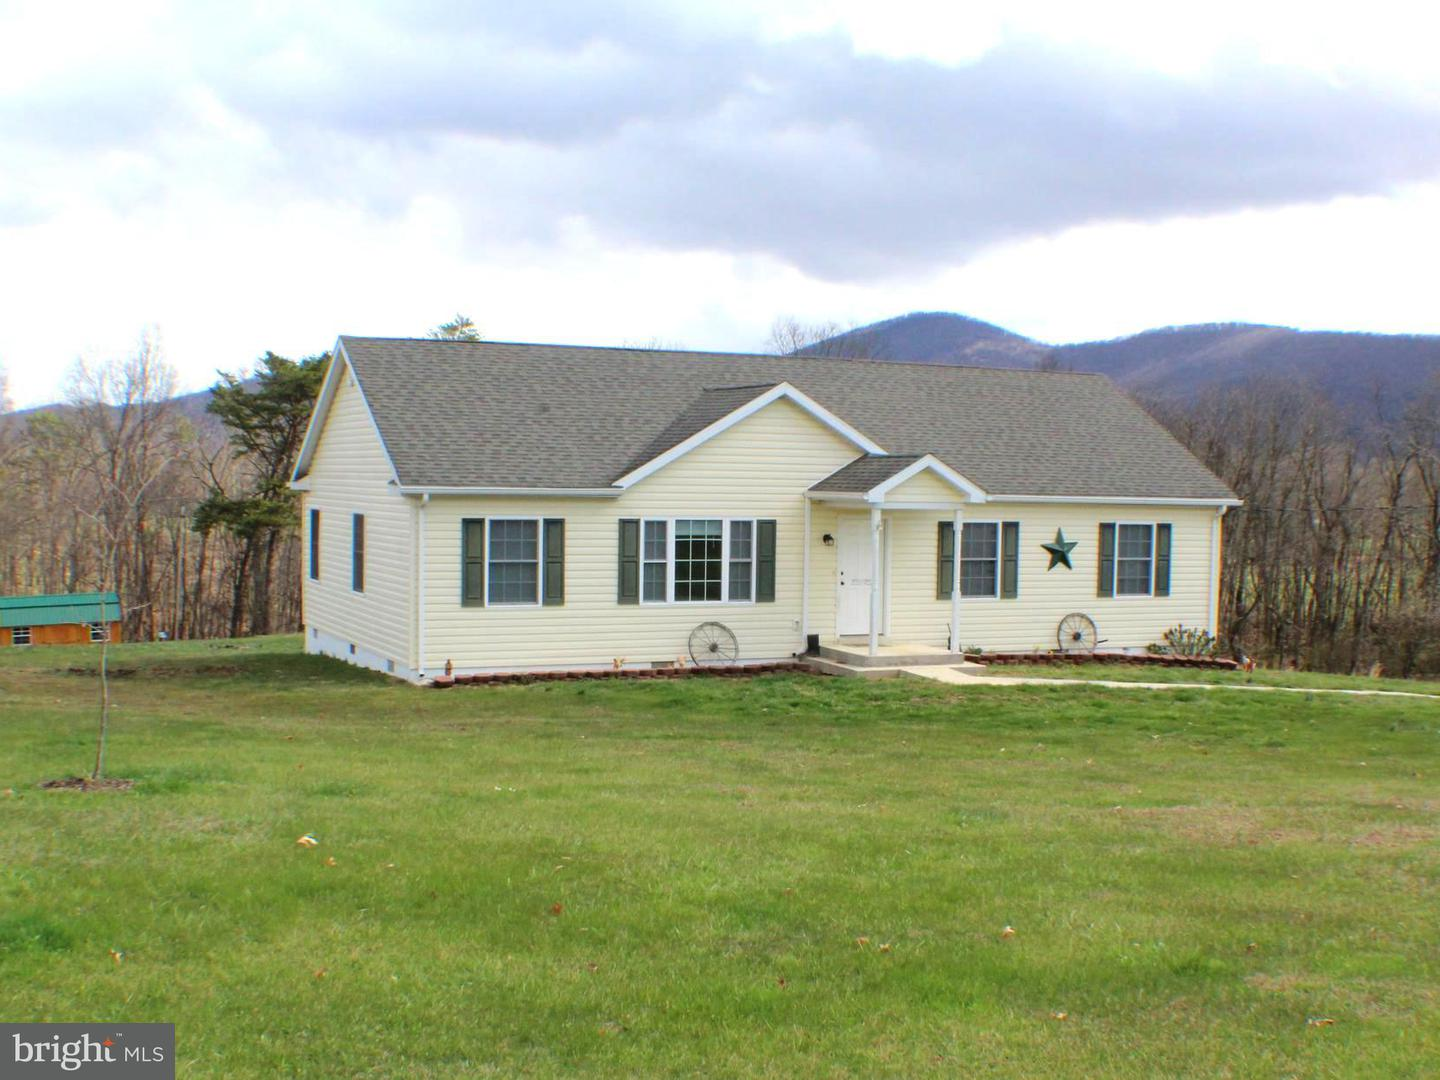 Single Family for Sale at 1376 Jc Markwood Rd Purgitsville, West Virginia 26845 United States